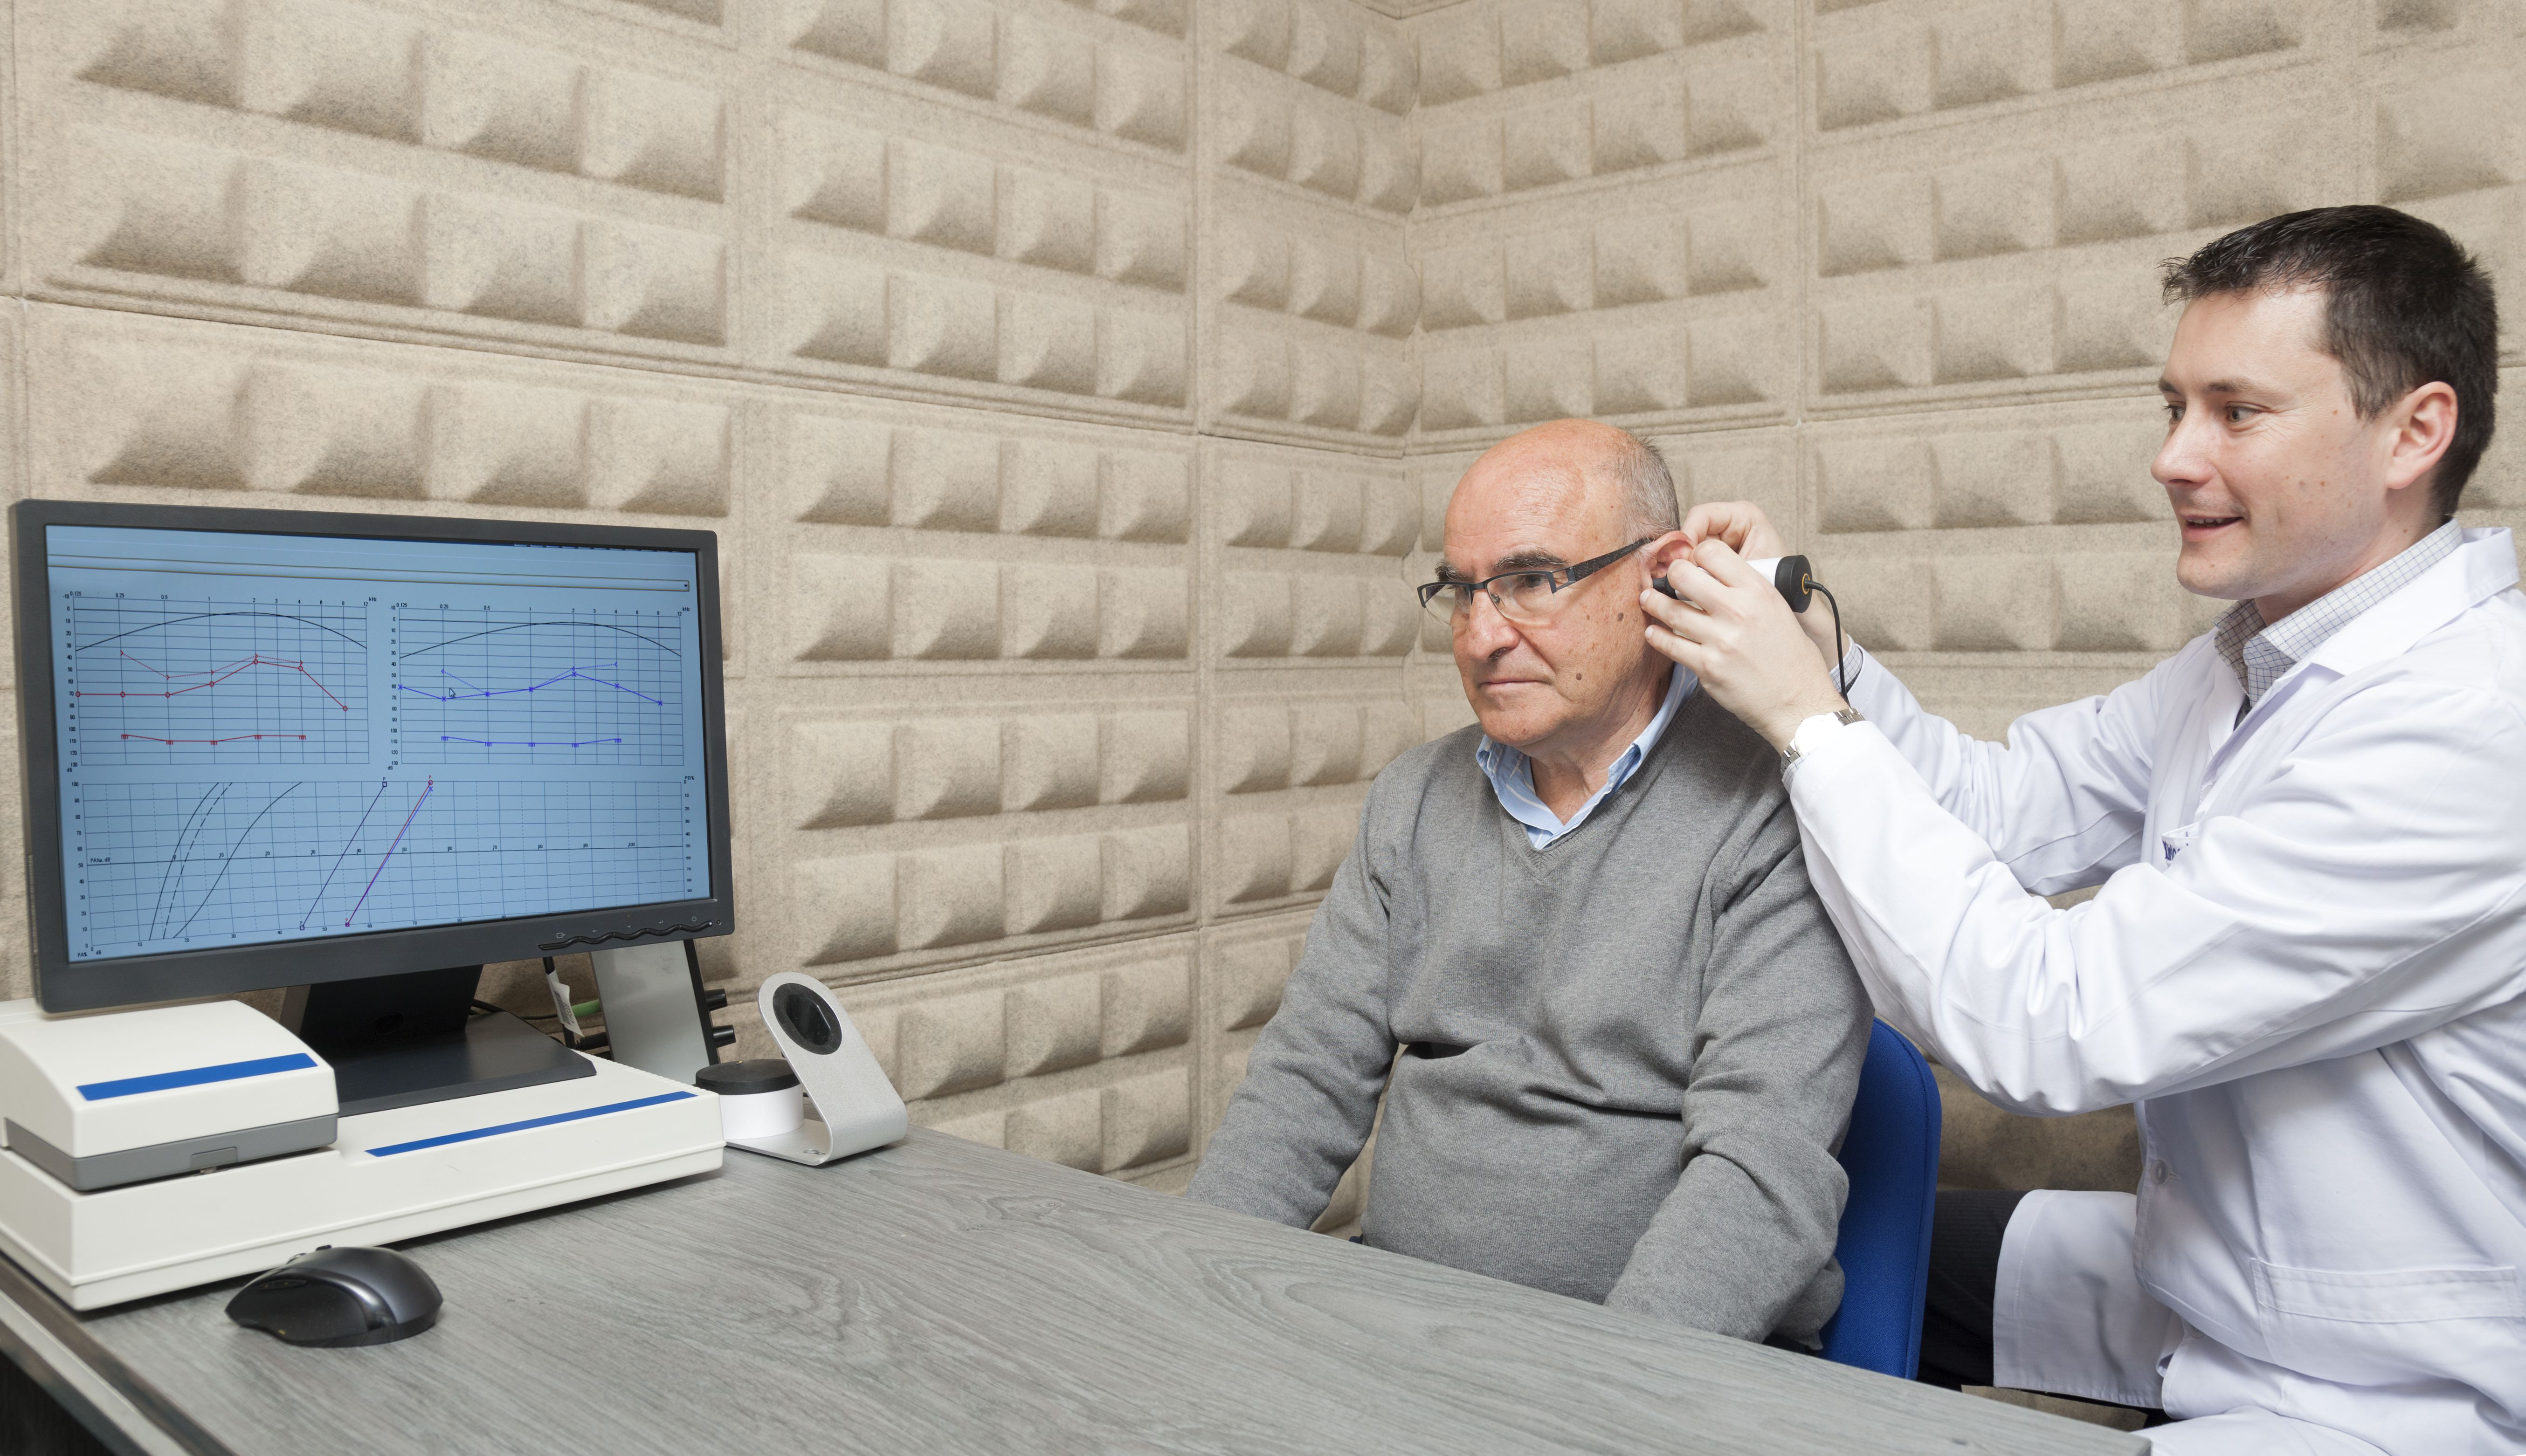 Audiologist checking a patient's hearing with a computer